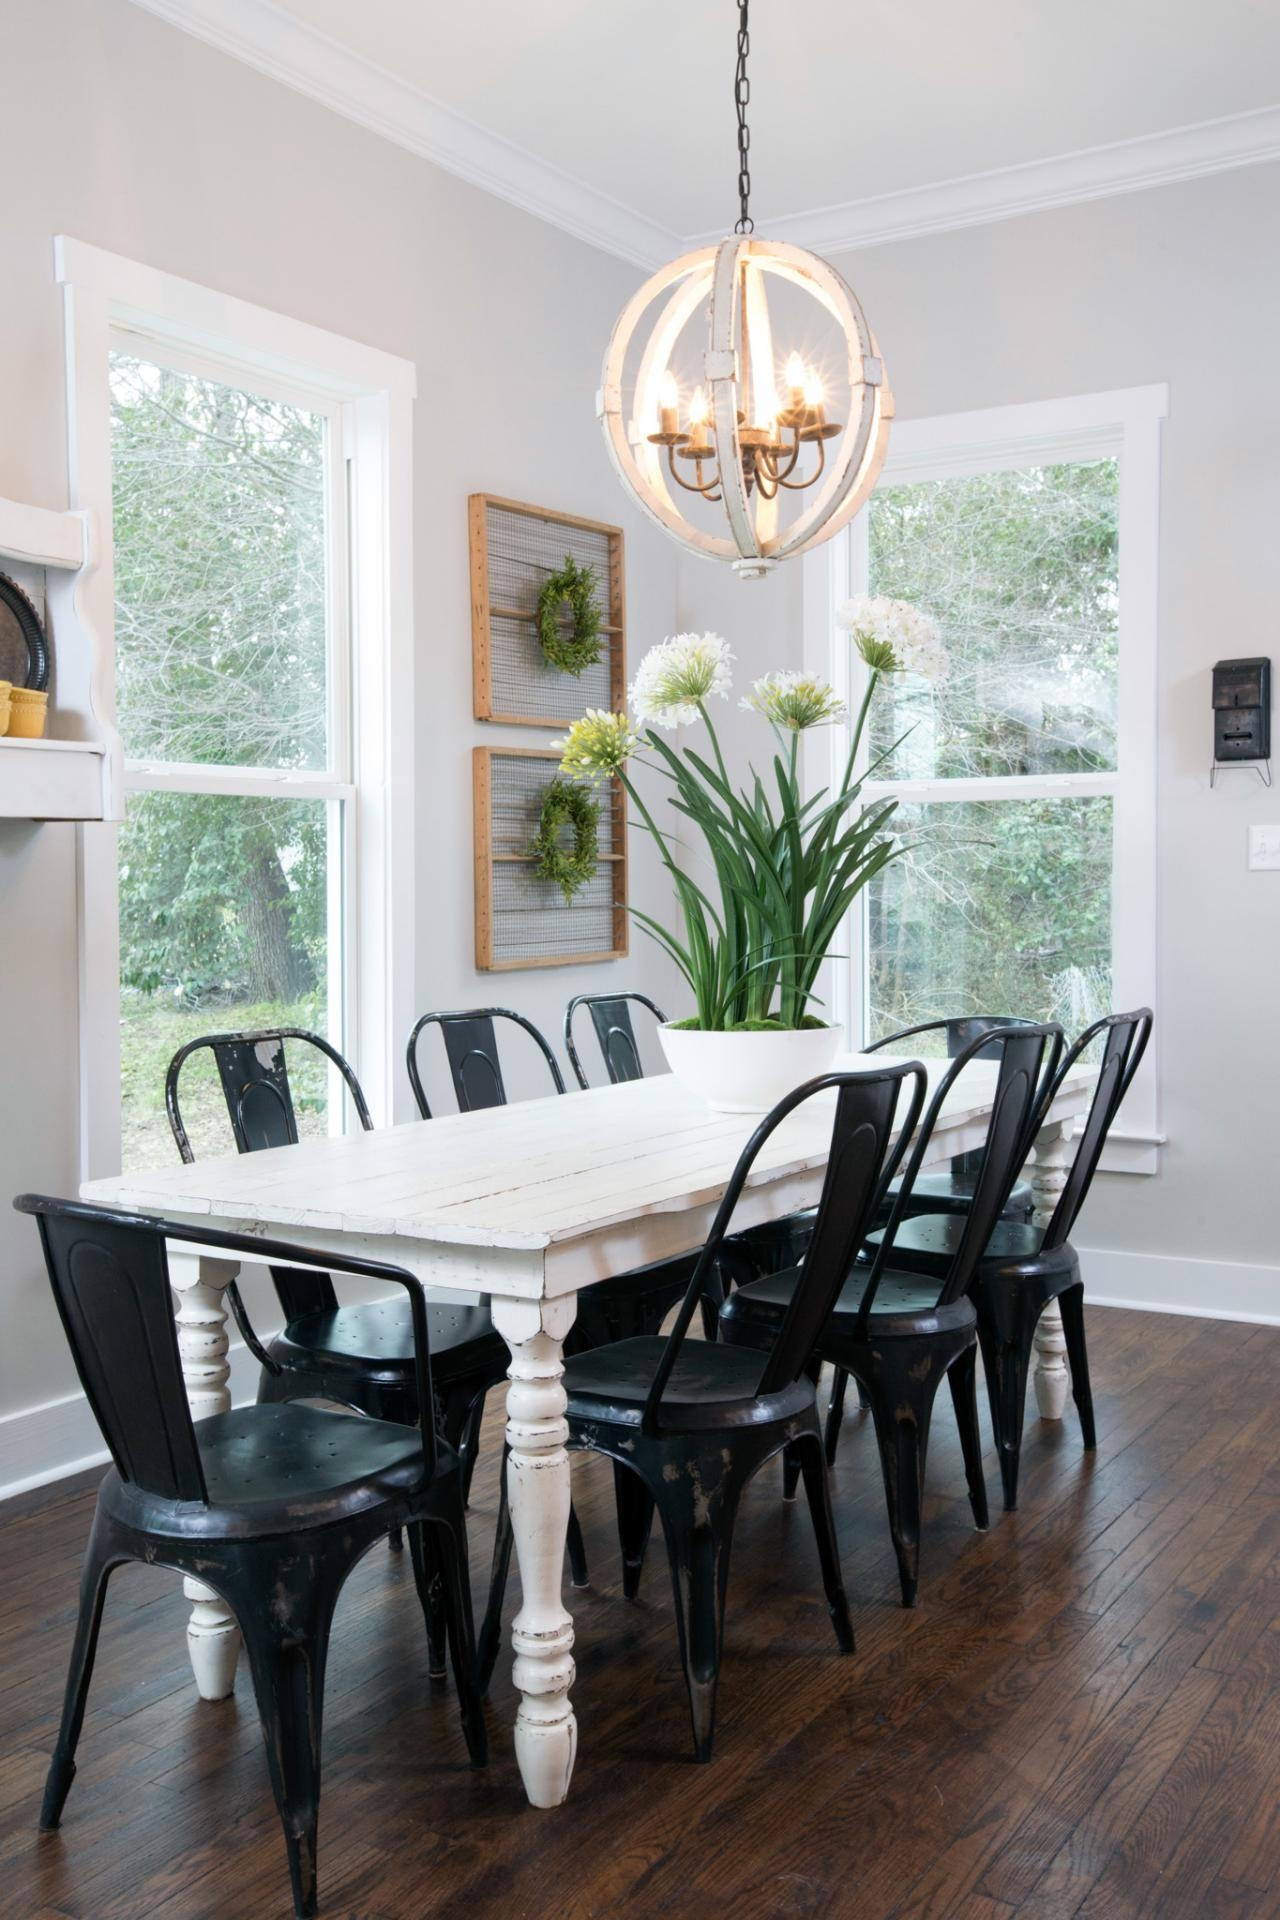 Charmant Steel Frame Dining Chairs